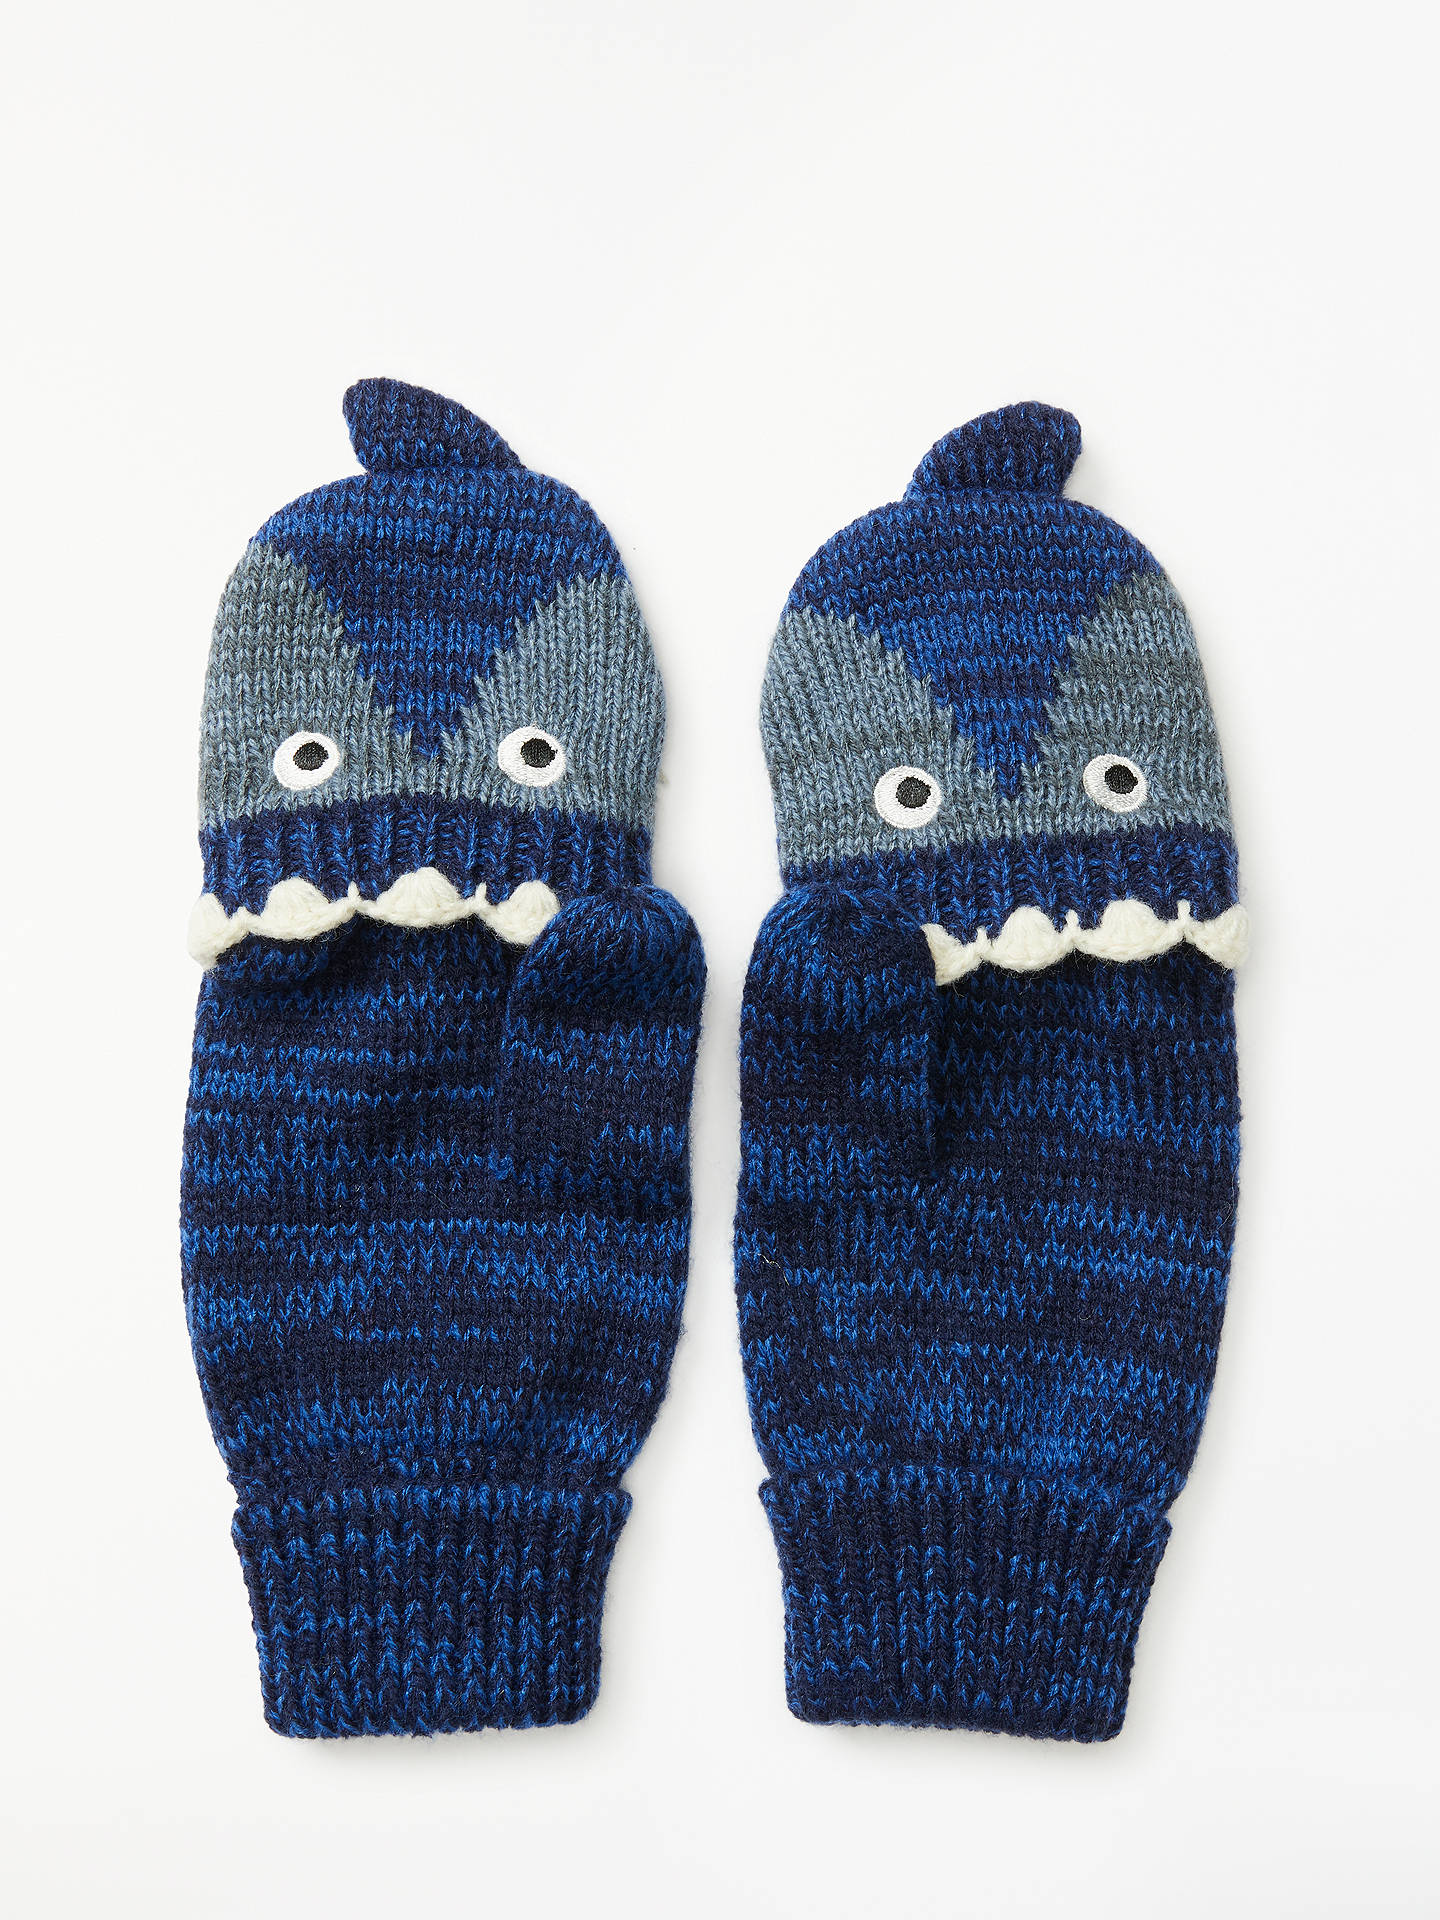 BuyJohn Lewis & Partners Children's Shark Flip Top Gloves, Grey/Navy, 3-5 years Online at johnlewis.com